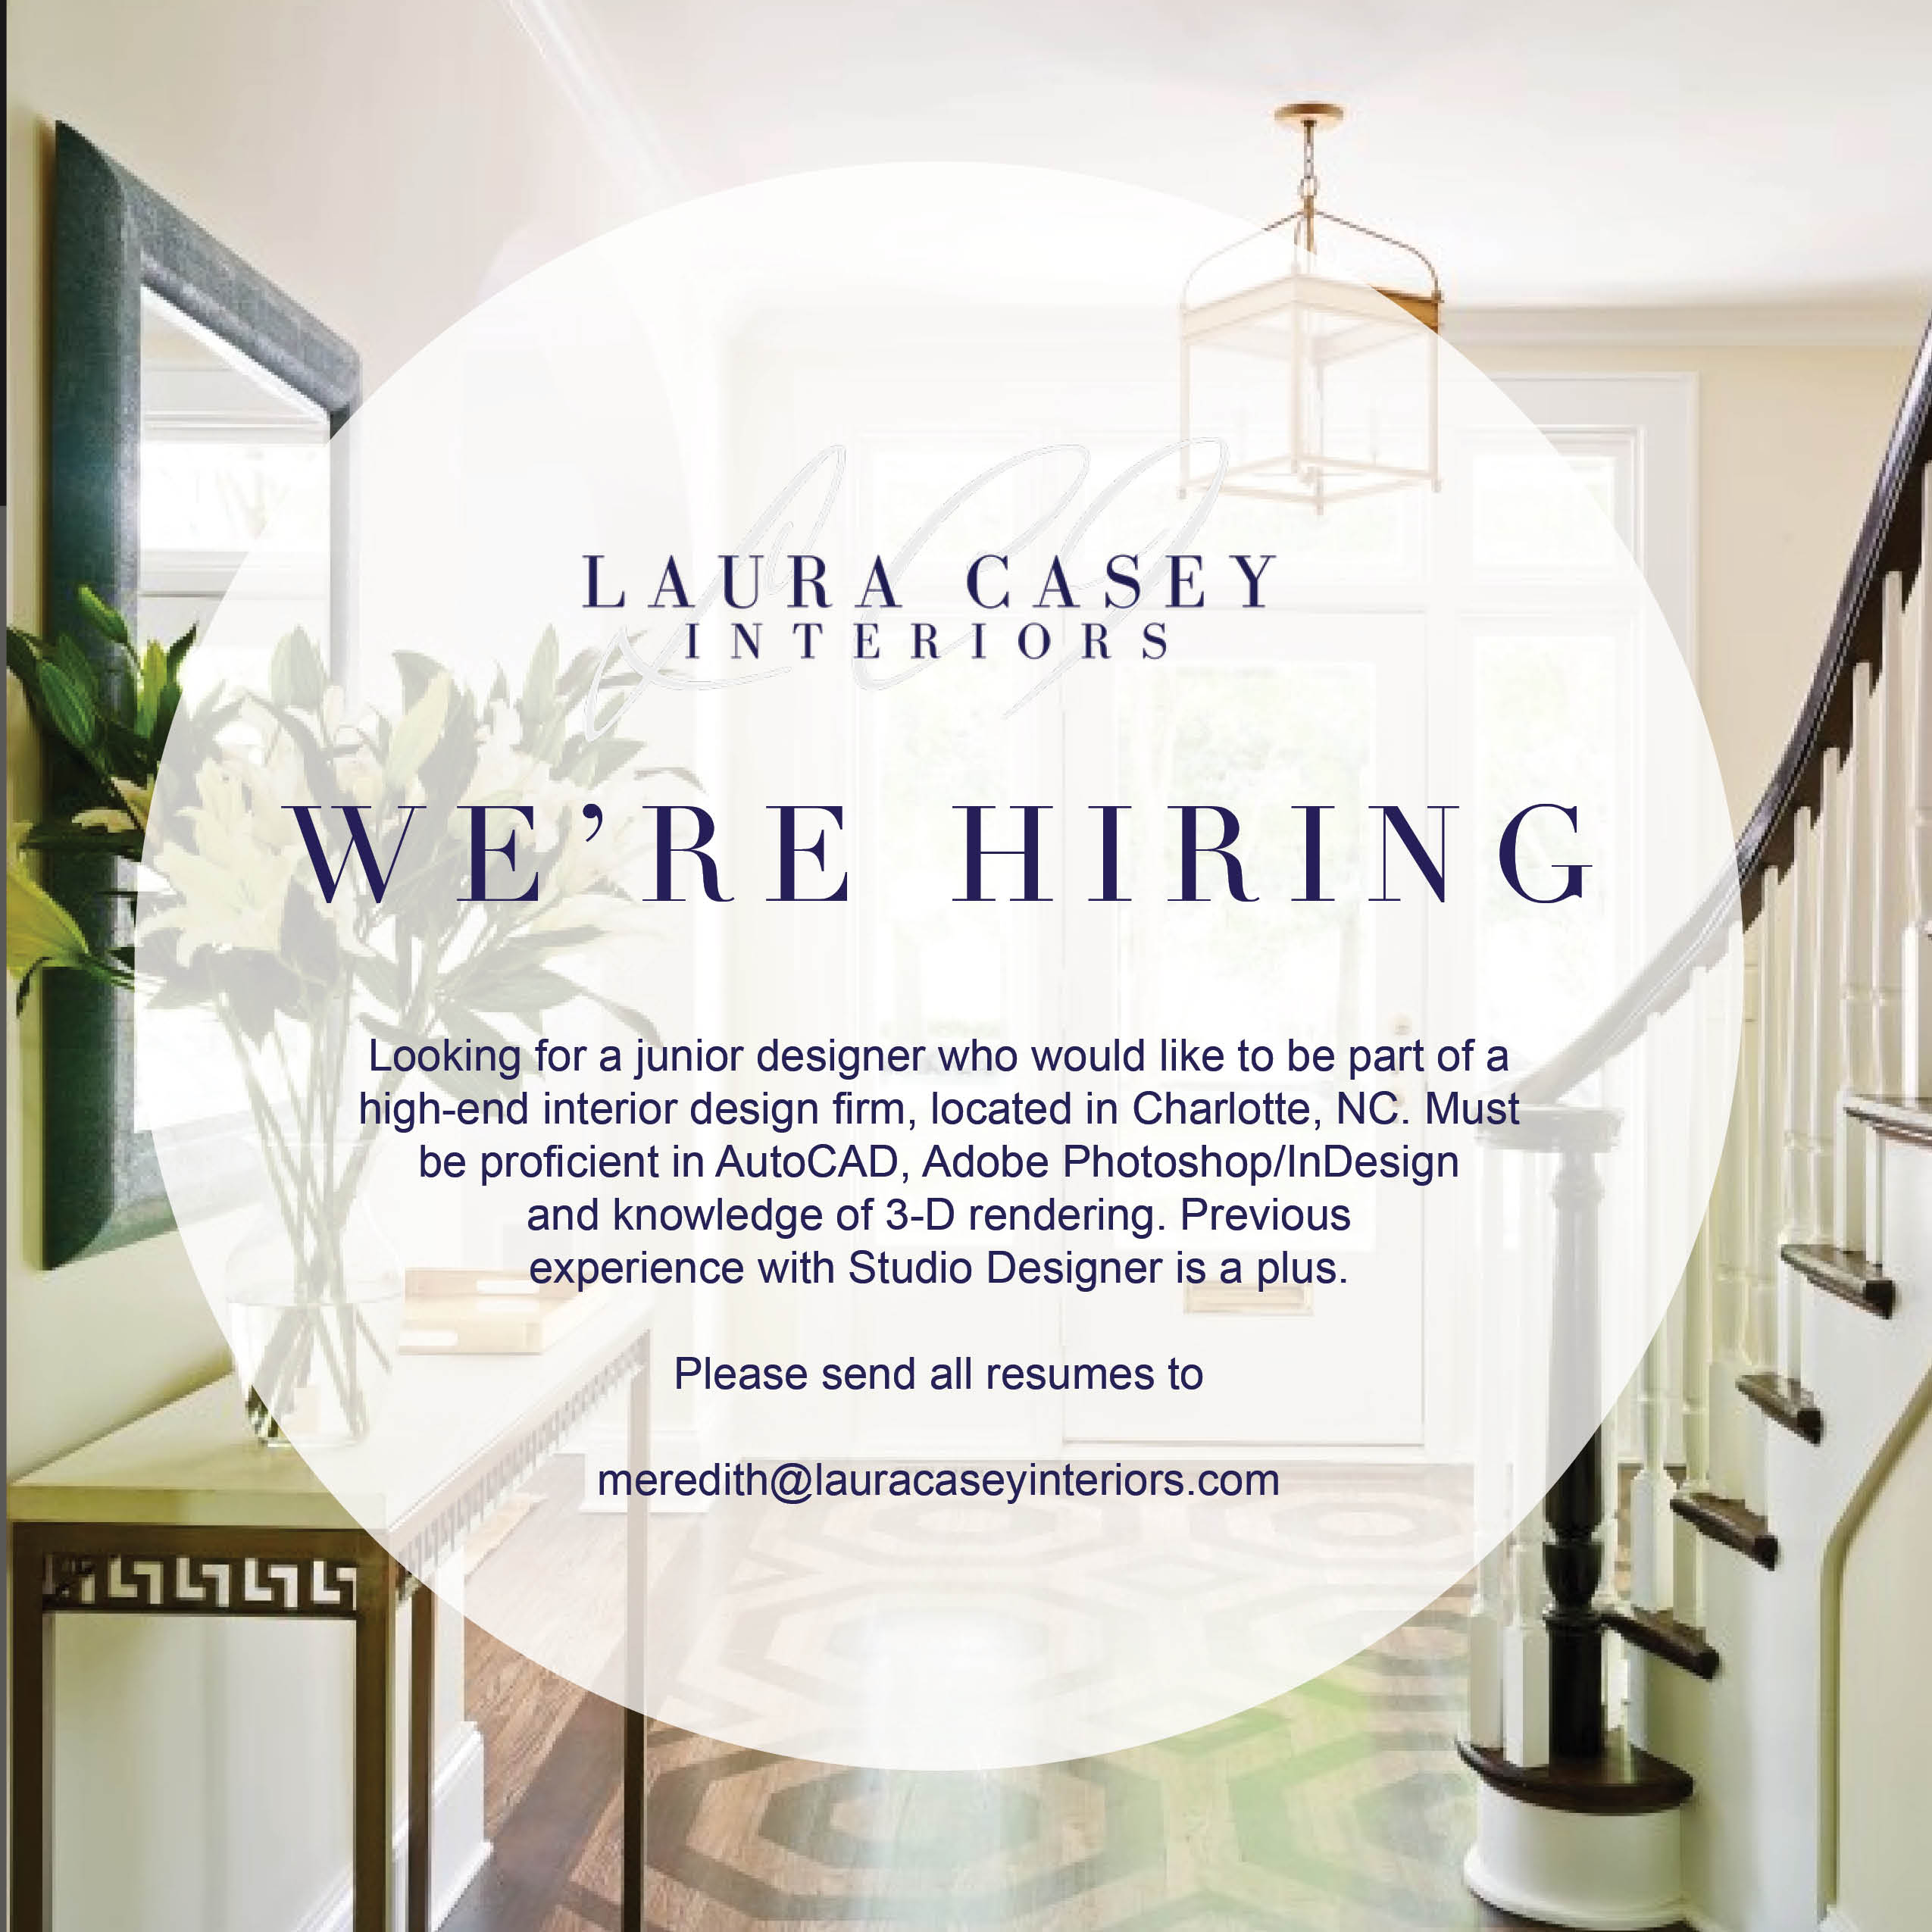 Laura caseyinteriors we 39 re hiring laura casey interiors - Interior decorator students for hire ...